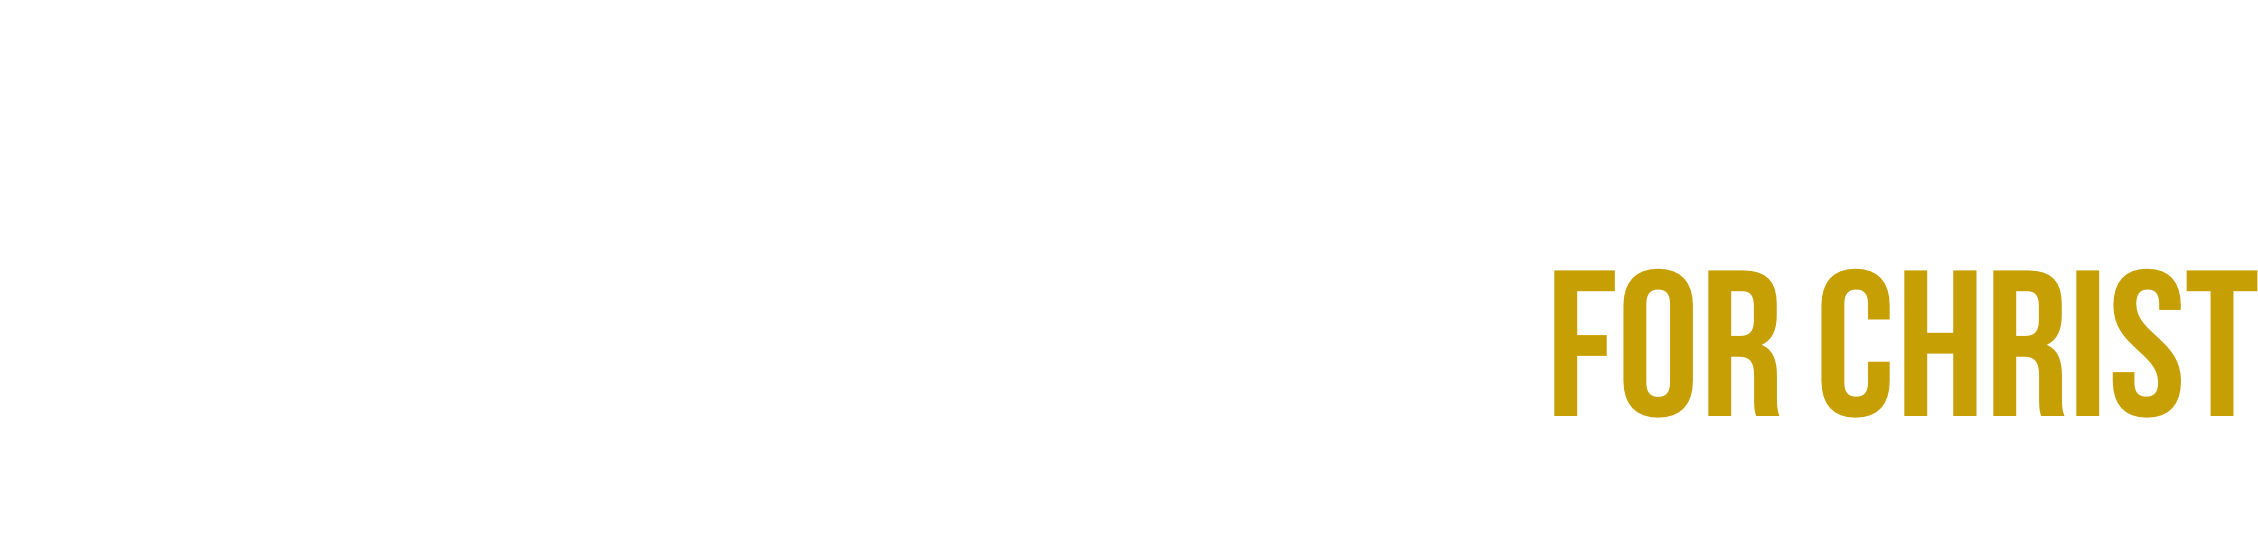 Traveling Apostles for Christ